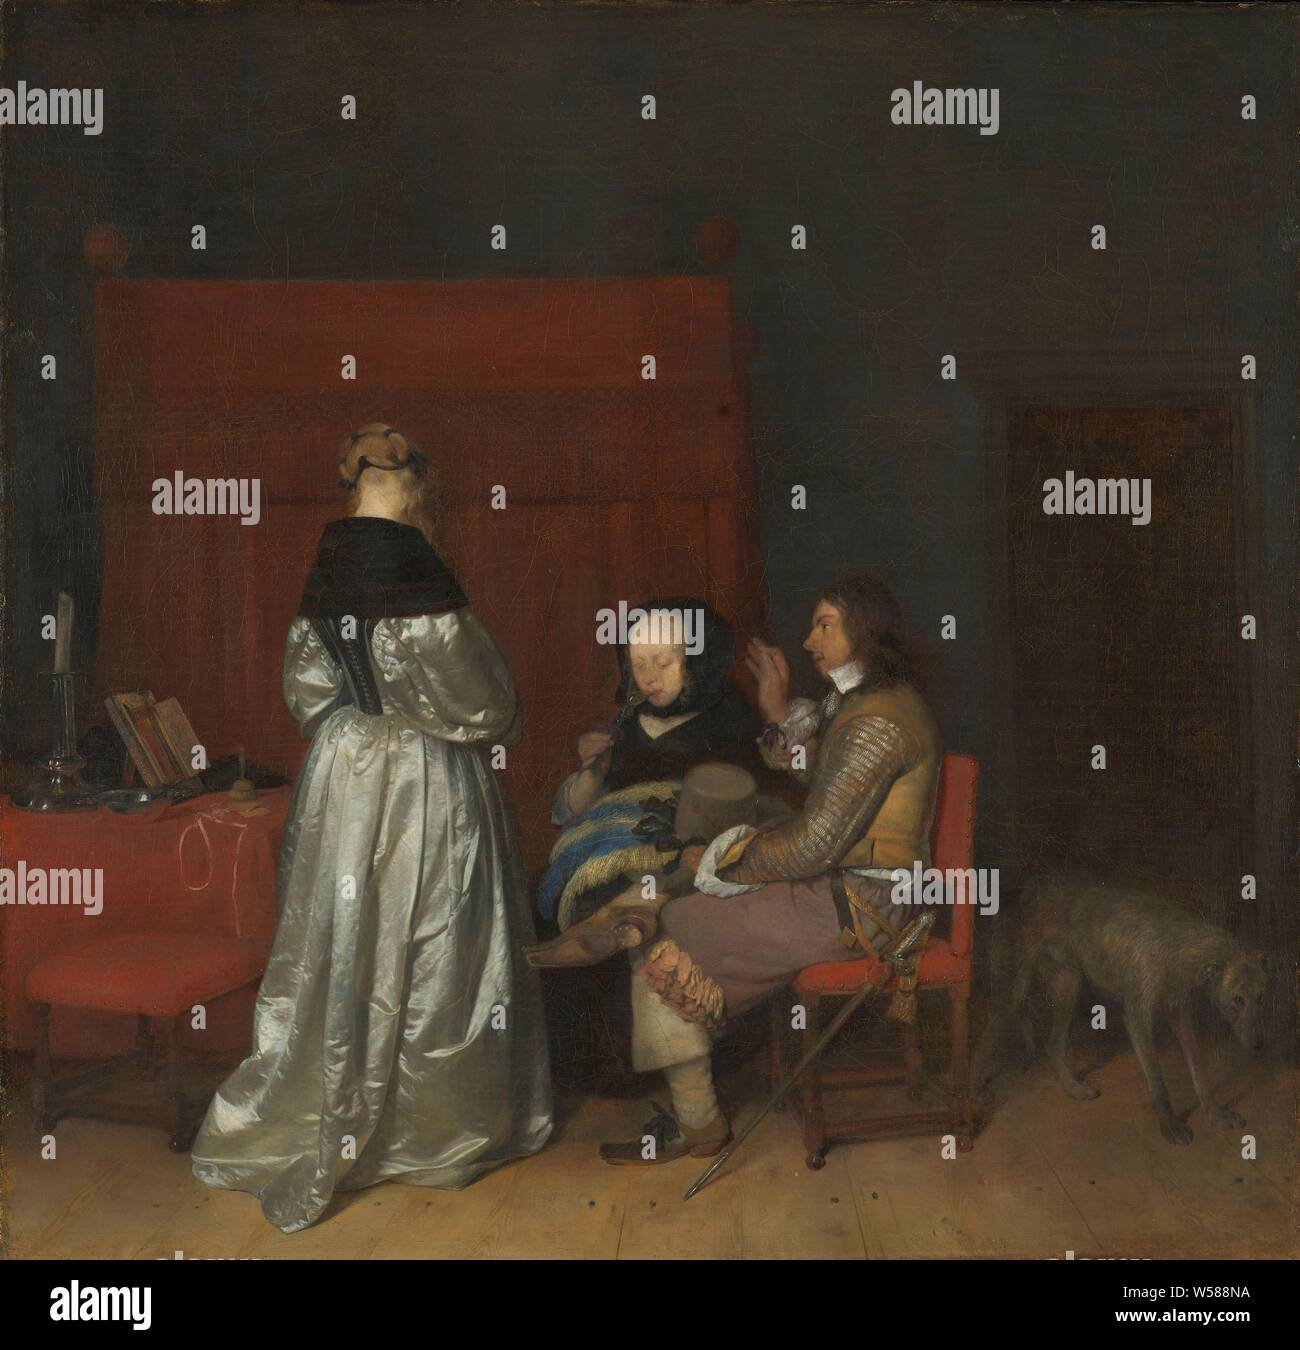 Three Figures Conversing Interior Known Paternal Admonition Gerard Ter Borch 165